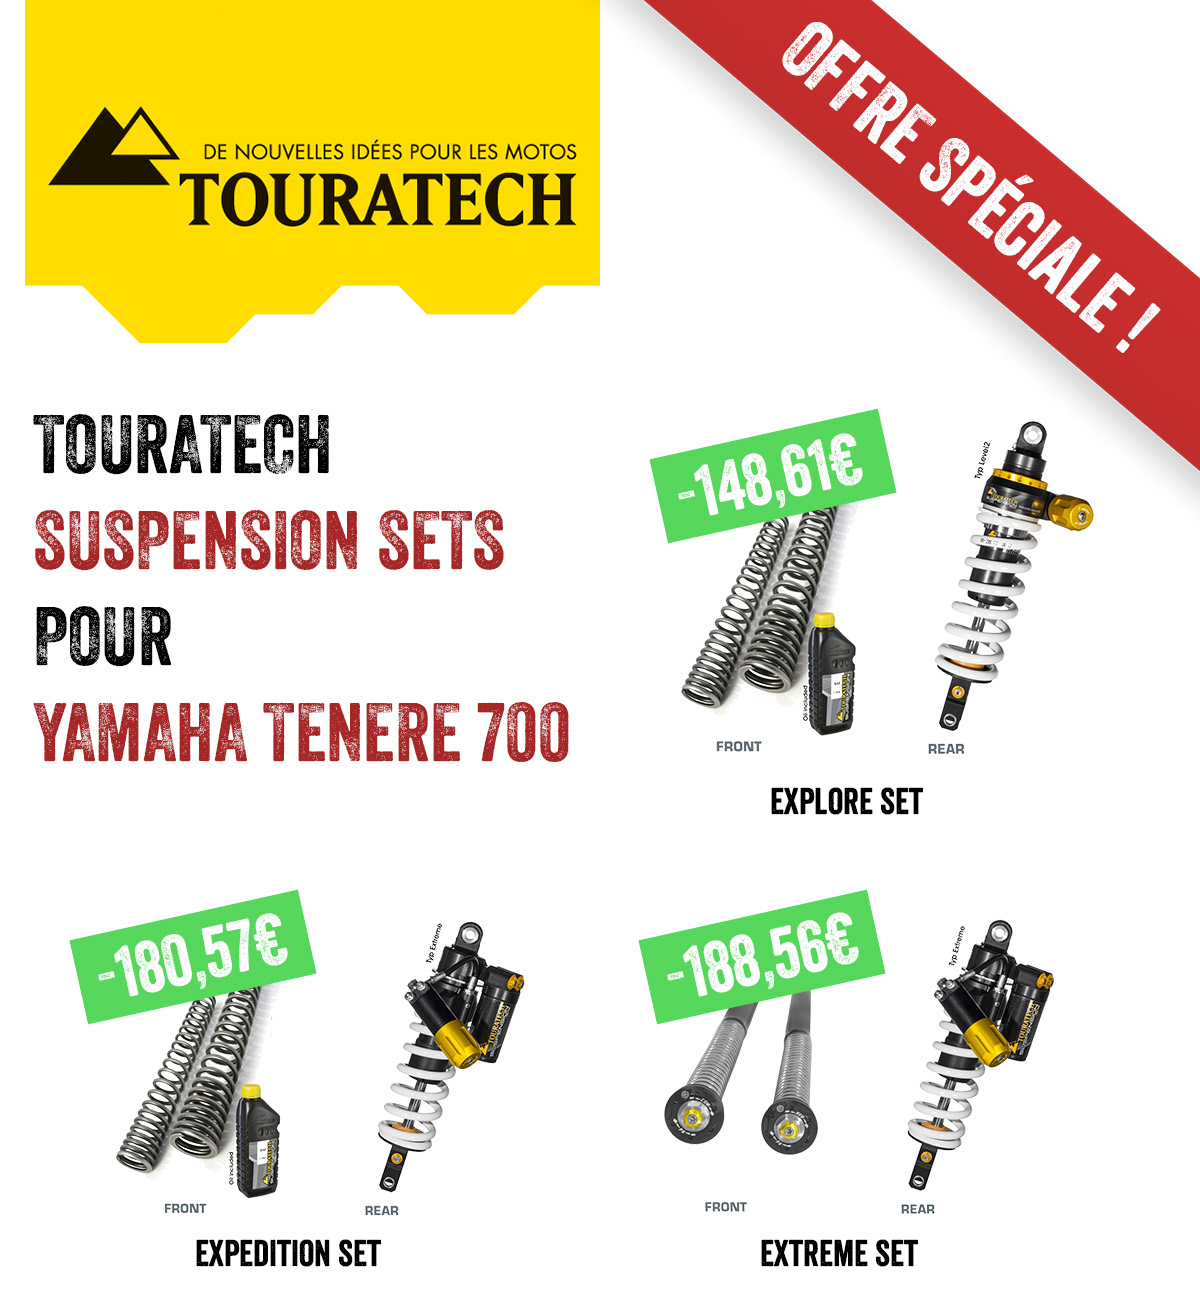 Suspension Sets Pour Yamaha Tenere 700